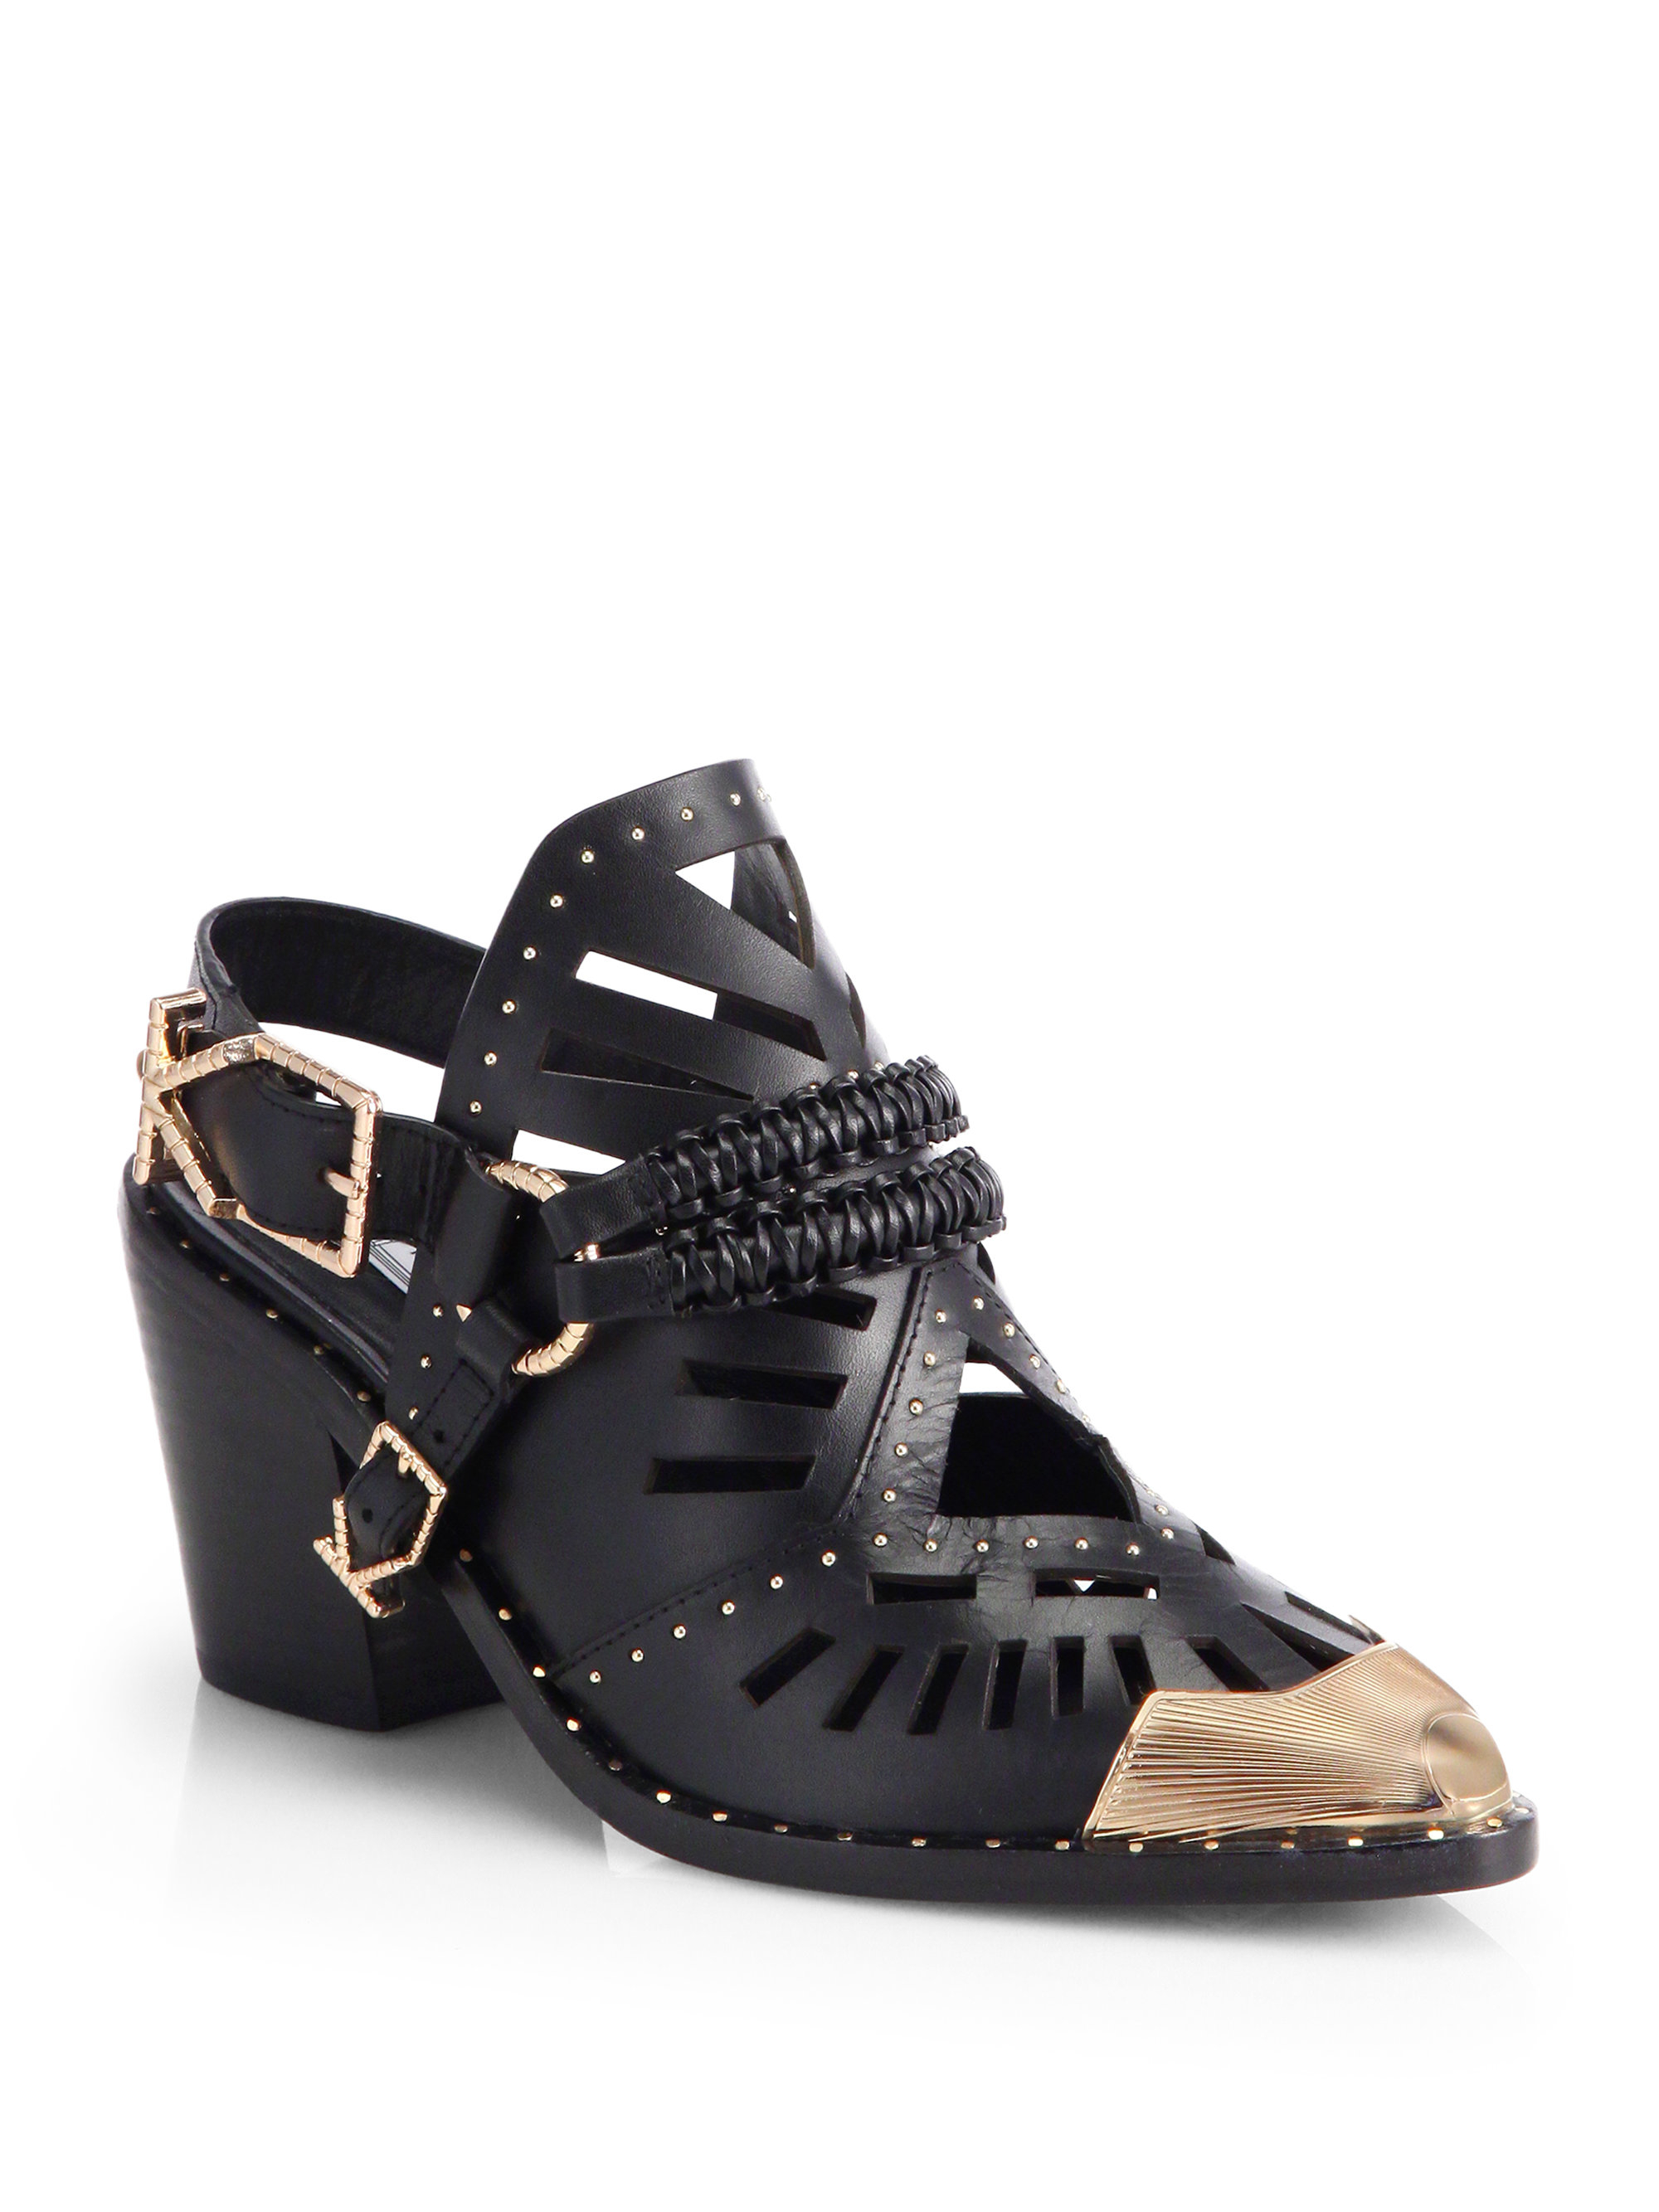 Ivy Kirzhner Embellished Ankle Boots buy cheap eastbay rz0HlRyAs